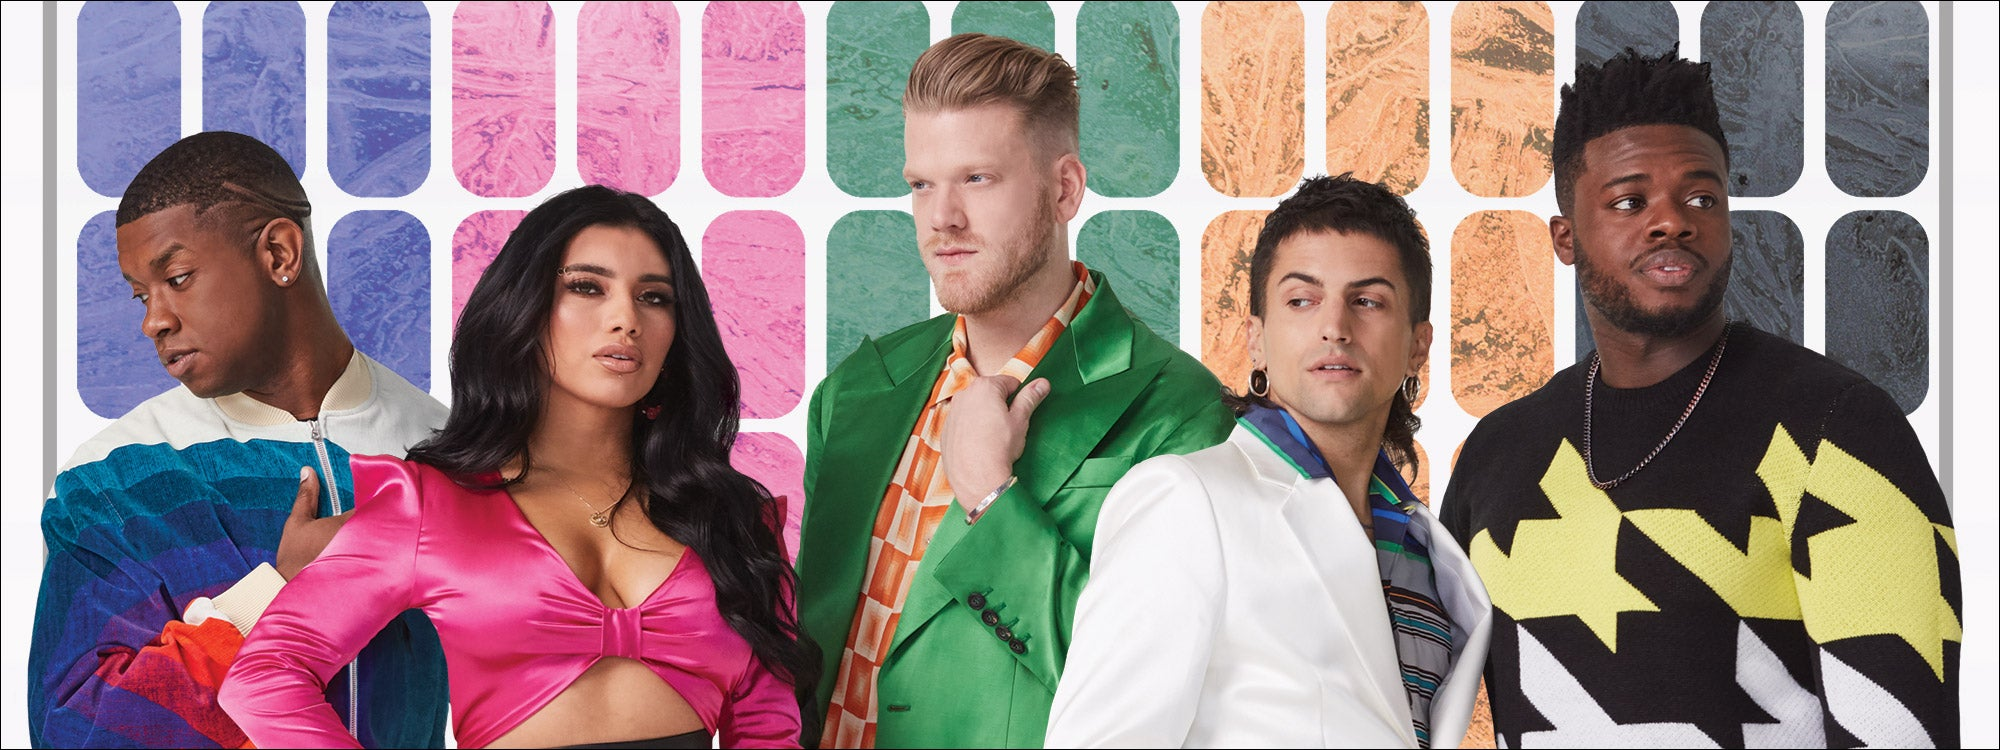 Pentatonix Tour 2018 Canada | lifehacked1st com